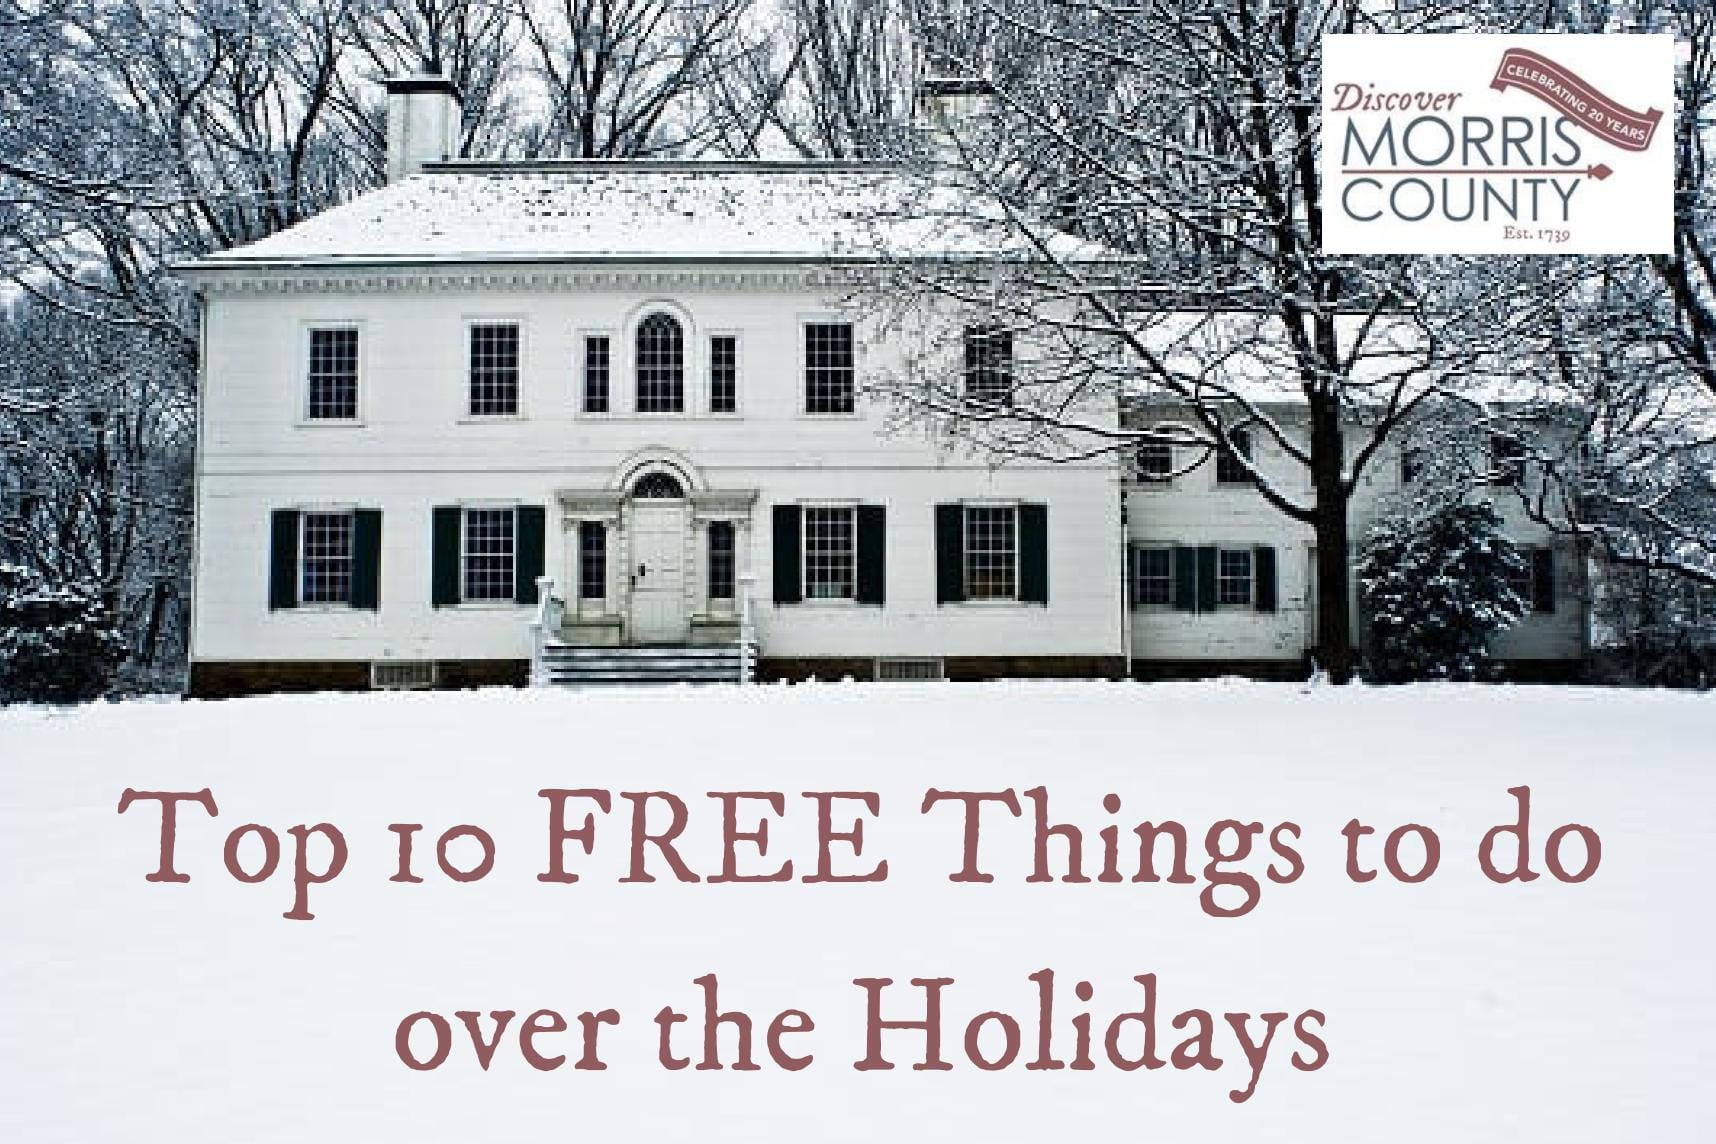 10 Free things to do over holidays